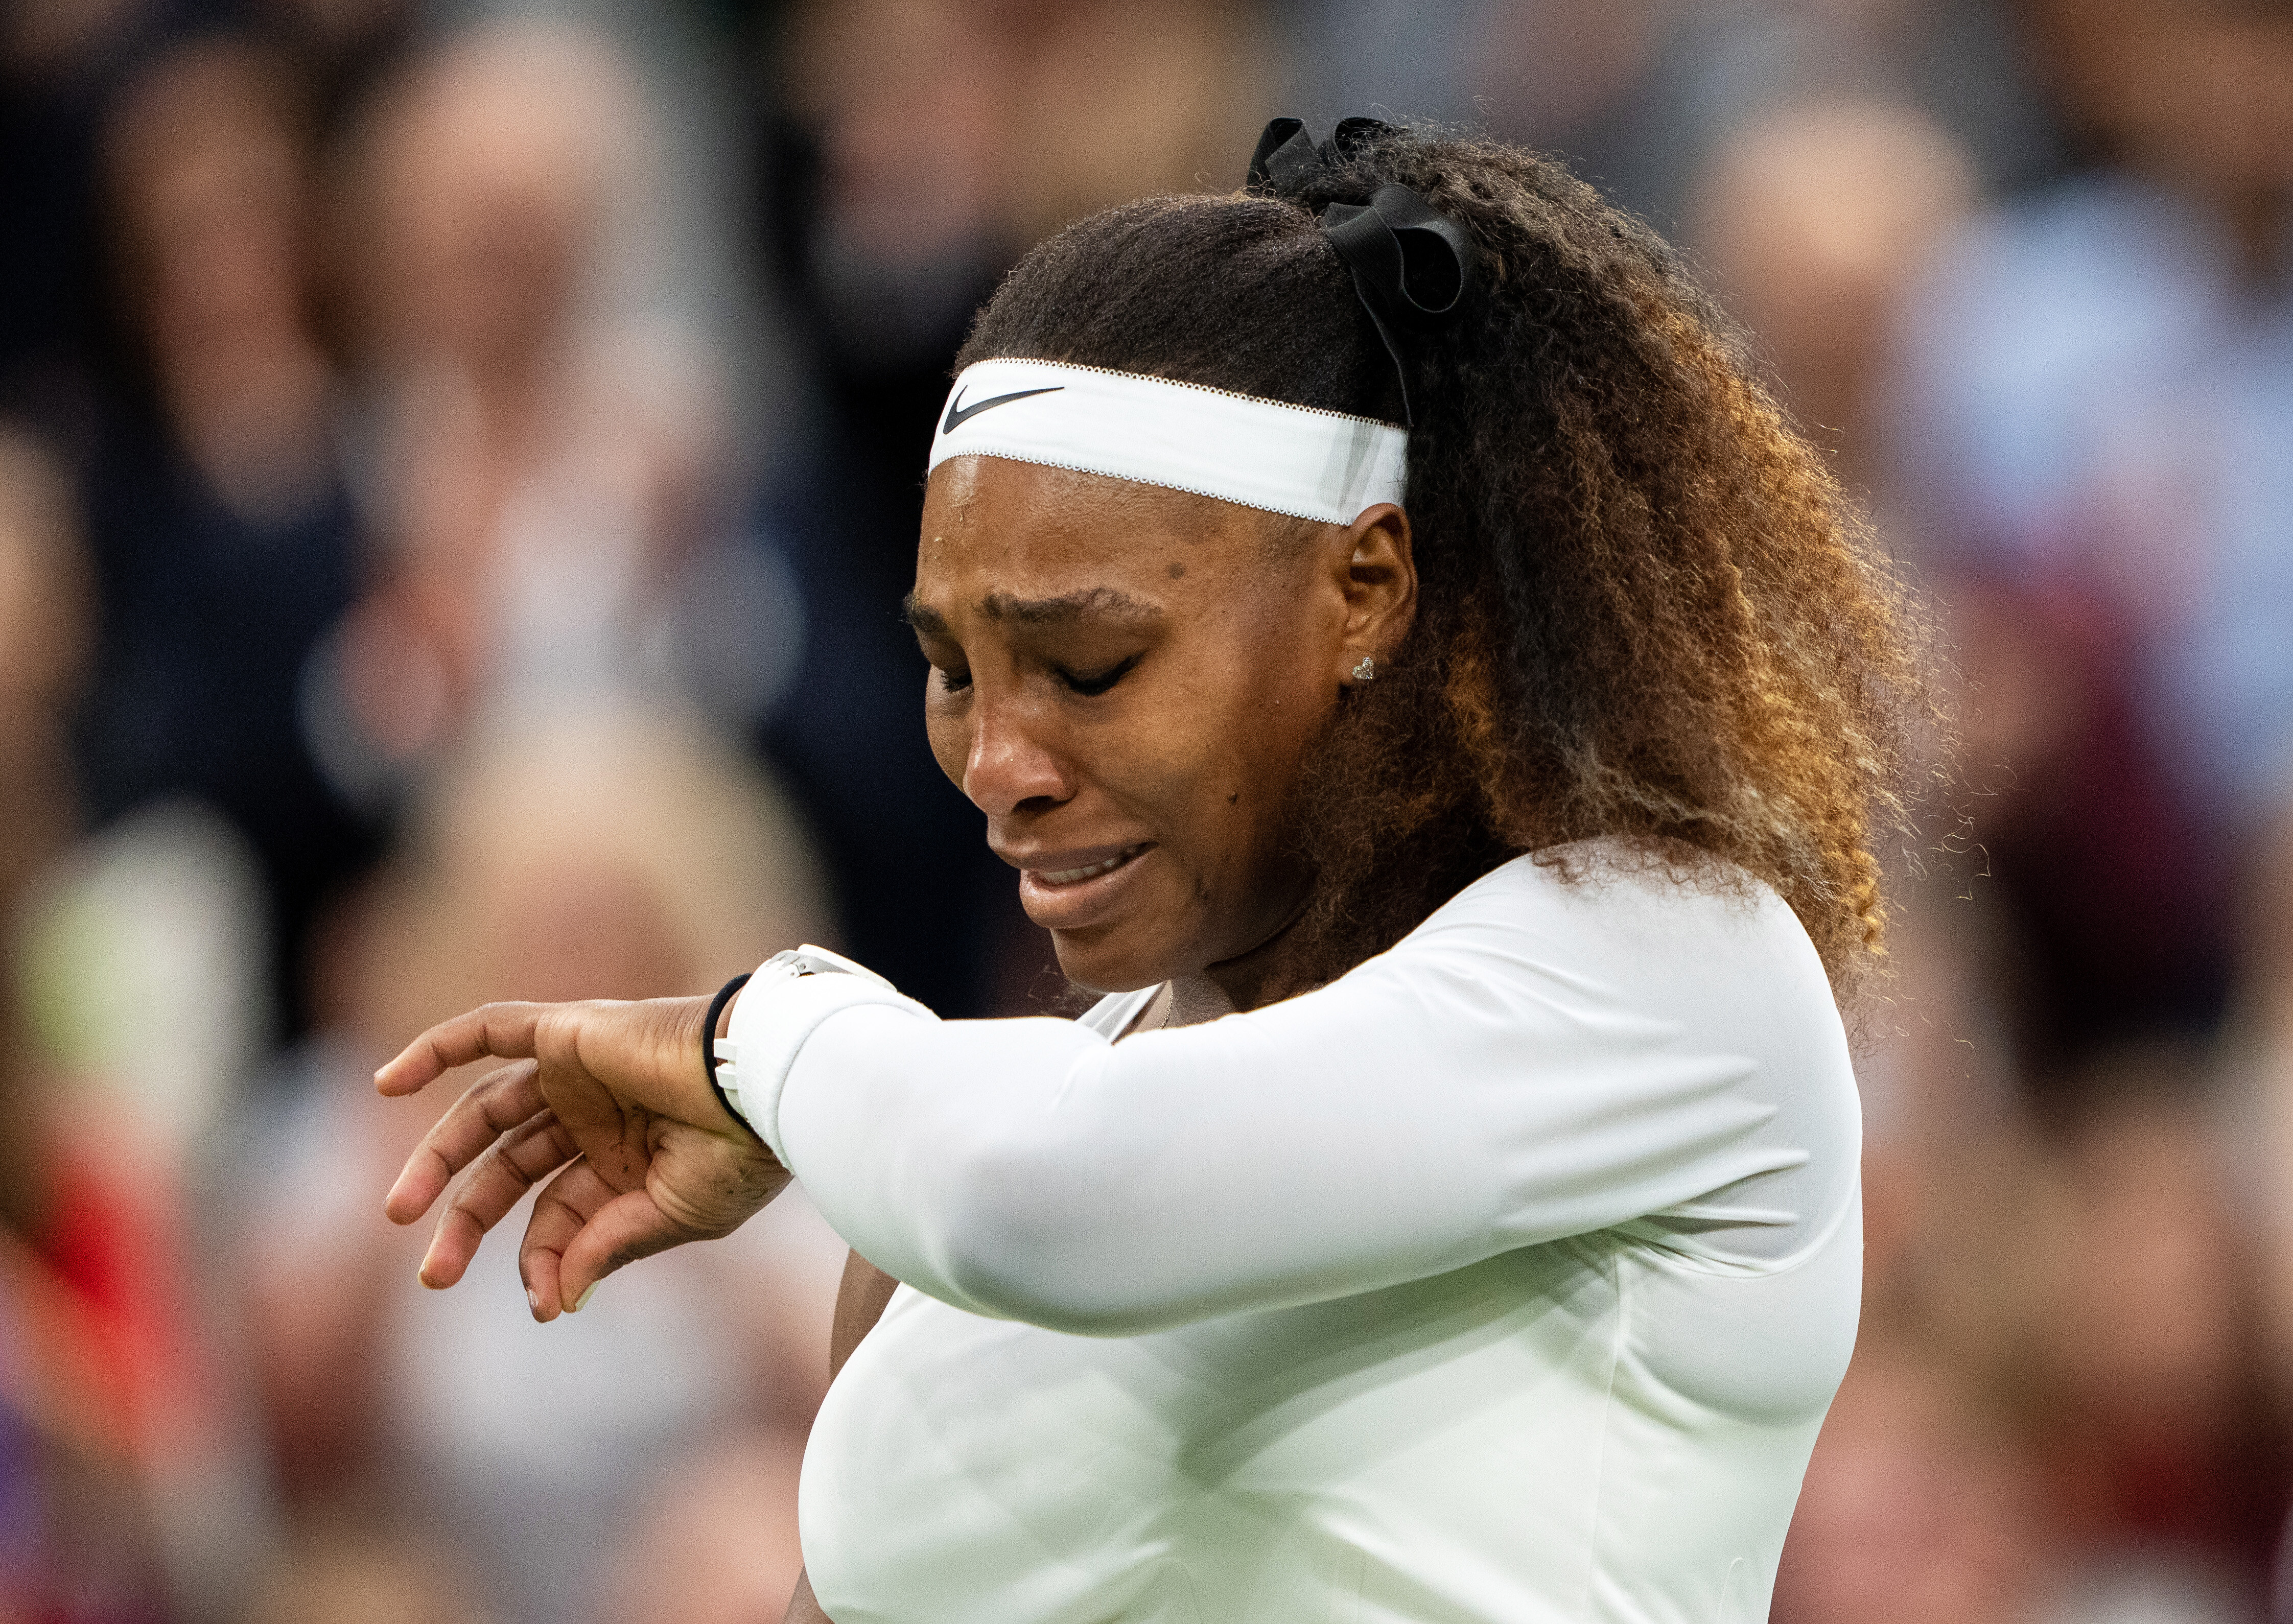 Serena Williams forced to retire from first-round Wimbledon match due to injury